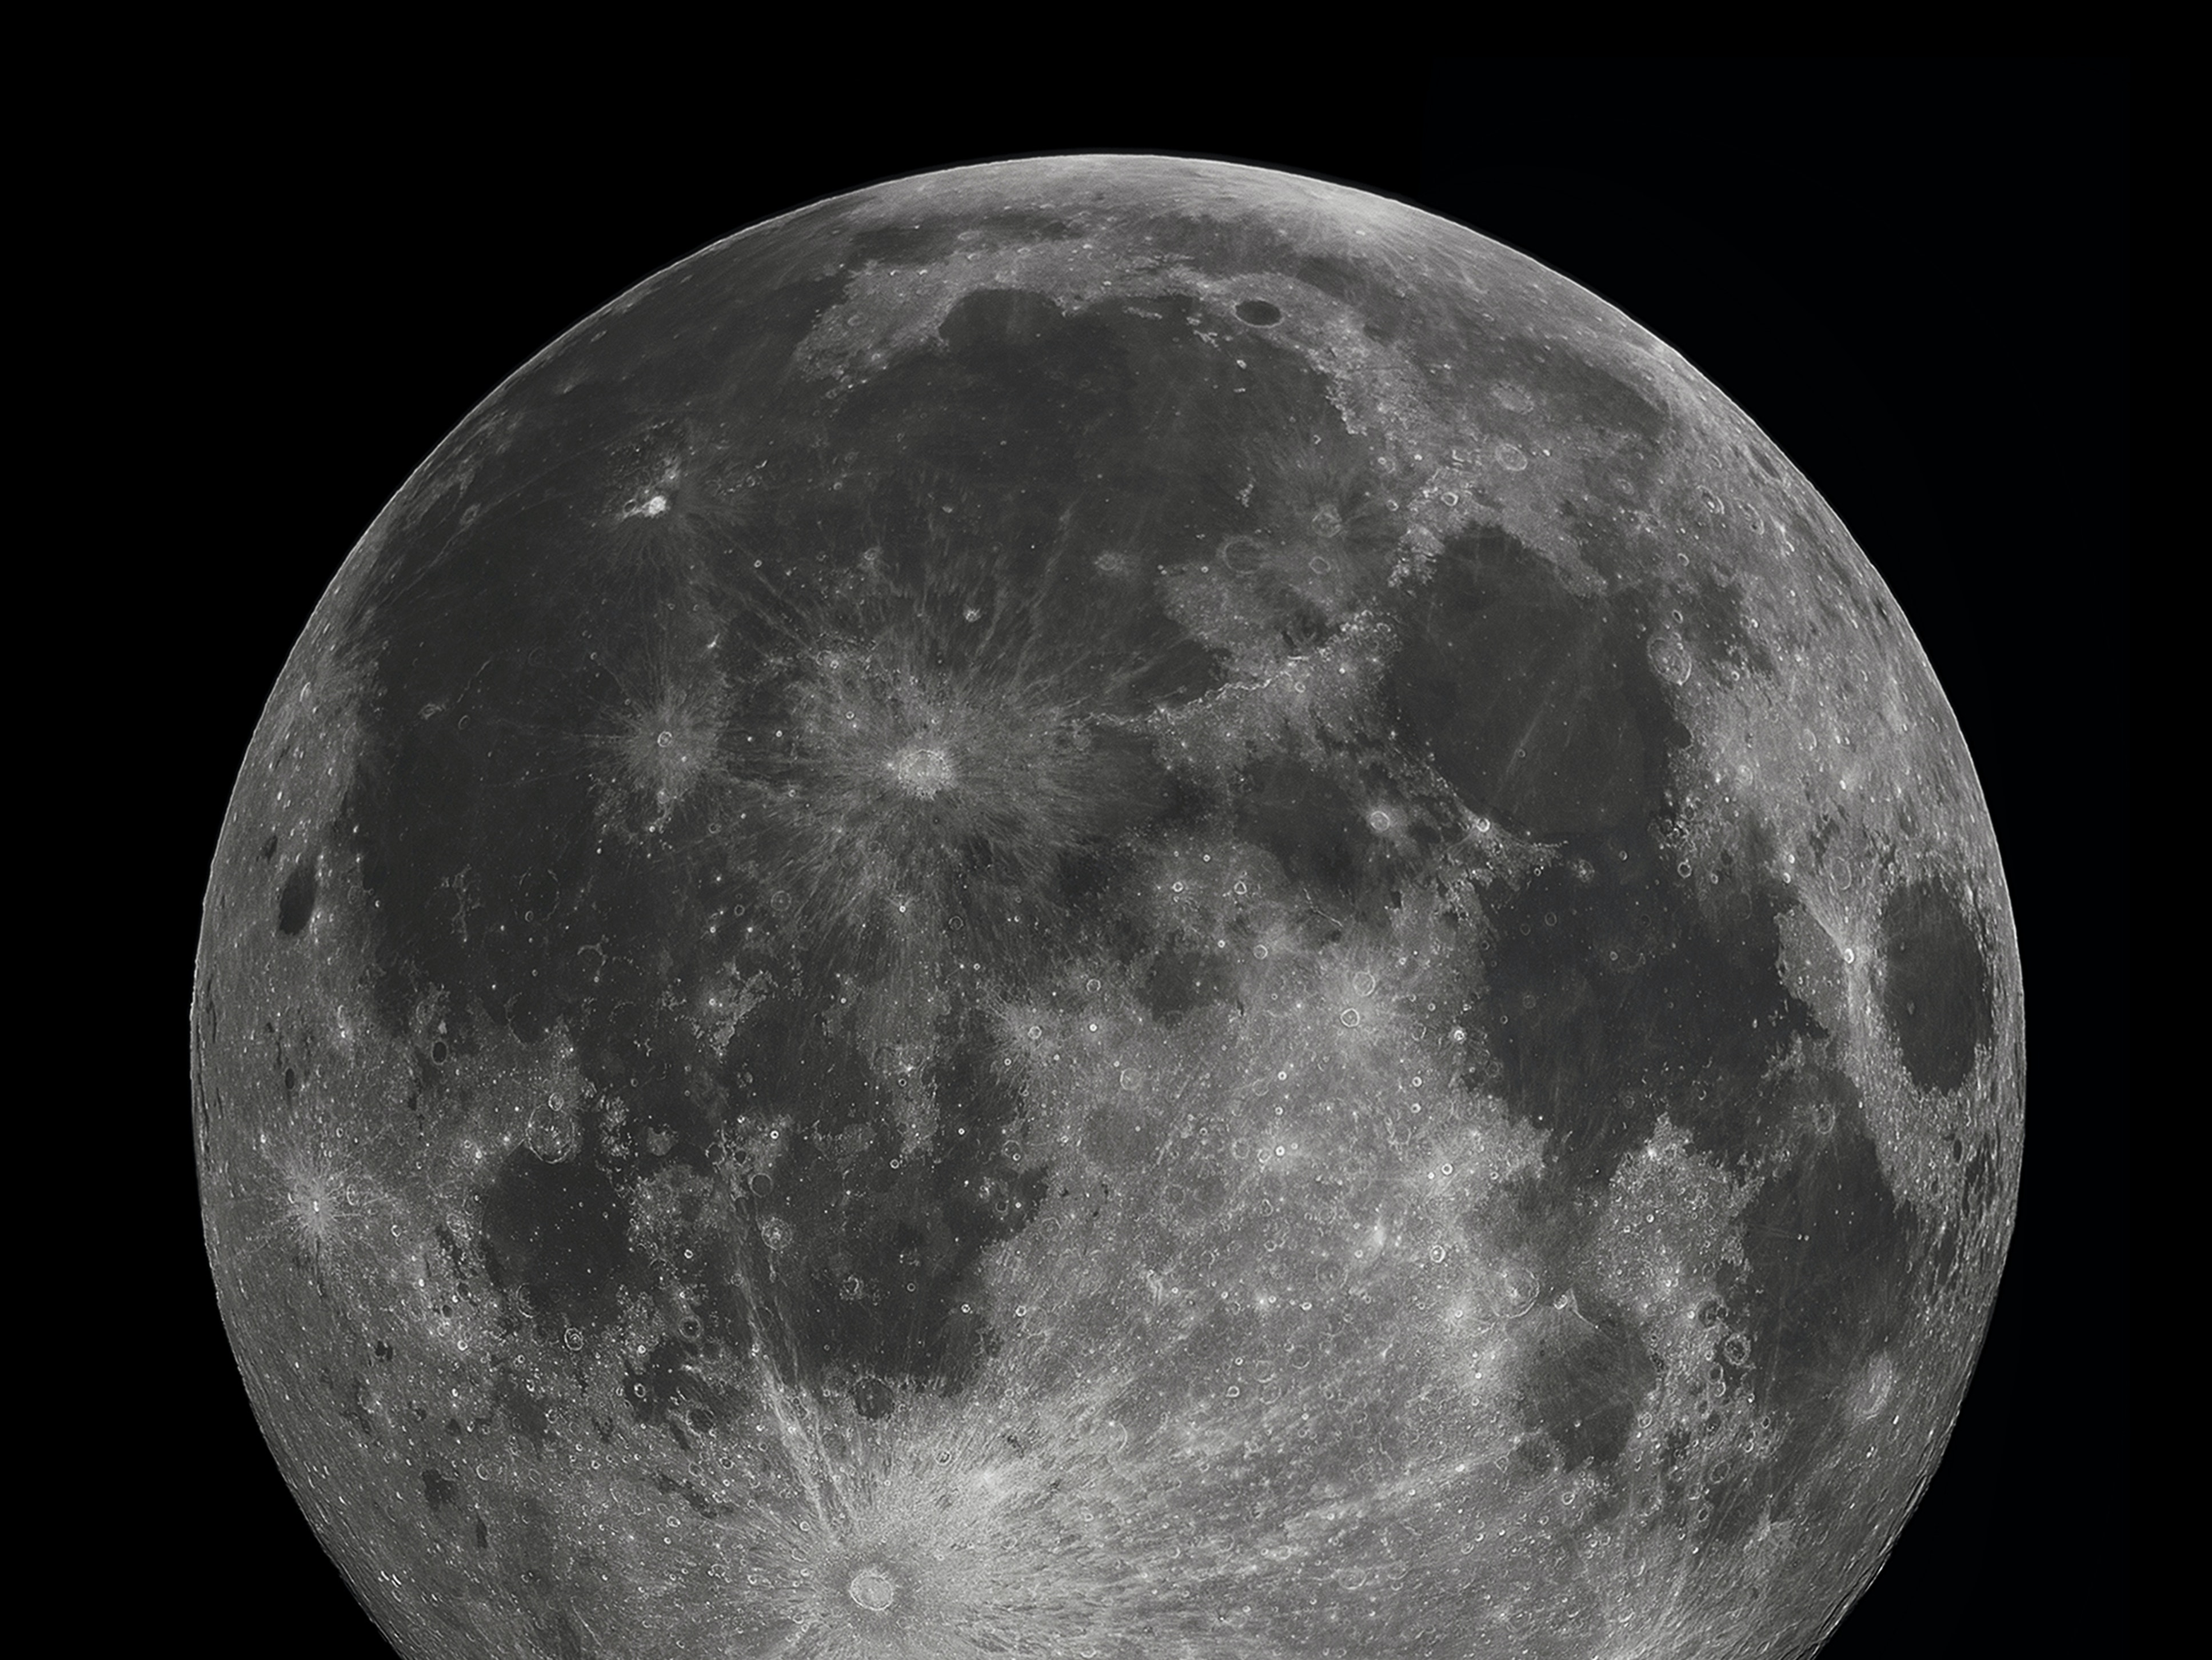 A full moon in 2010